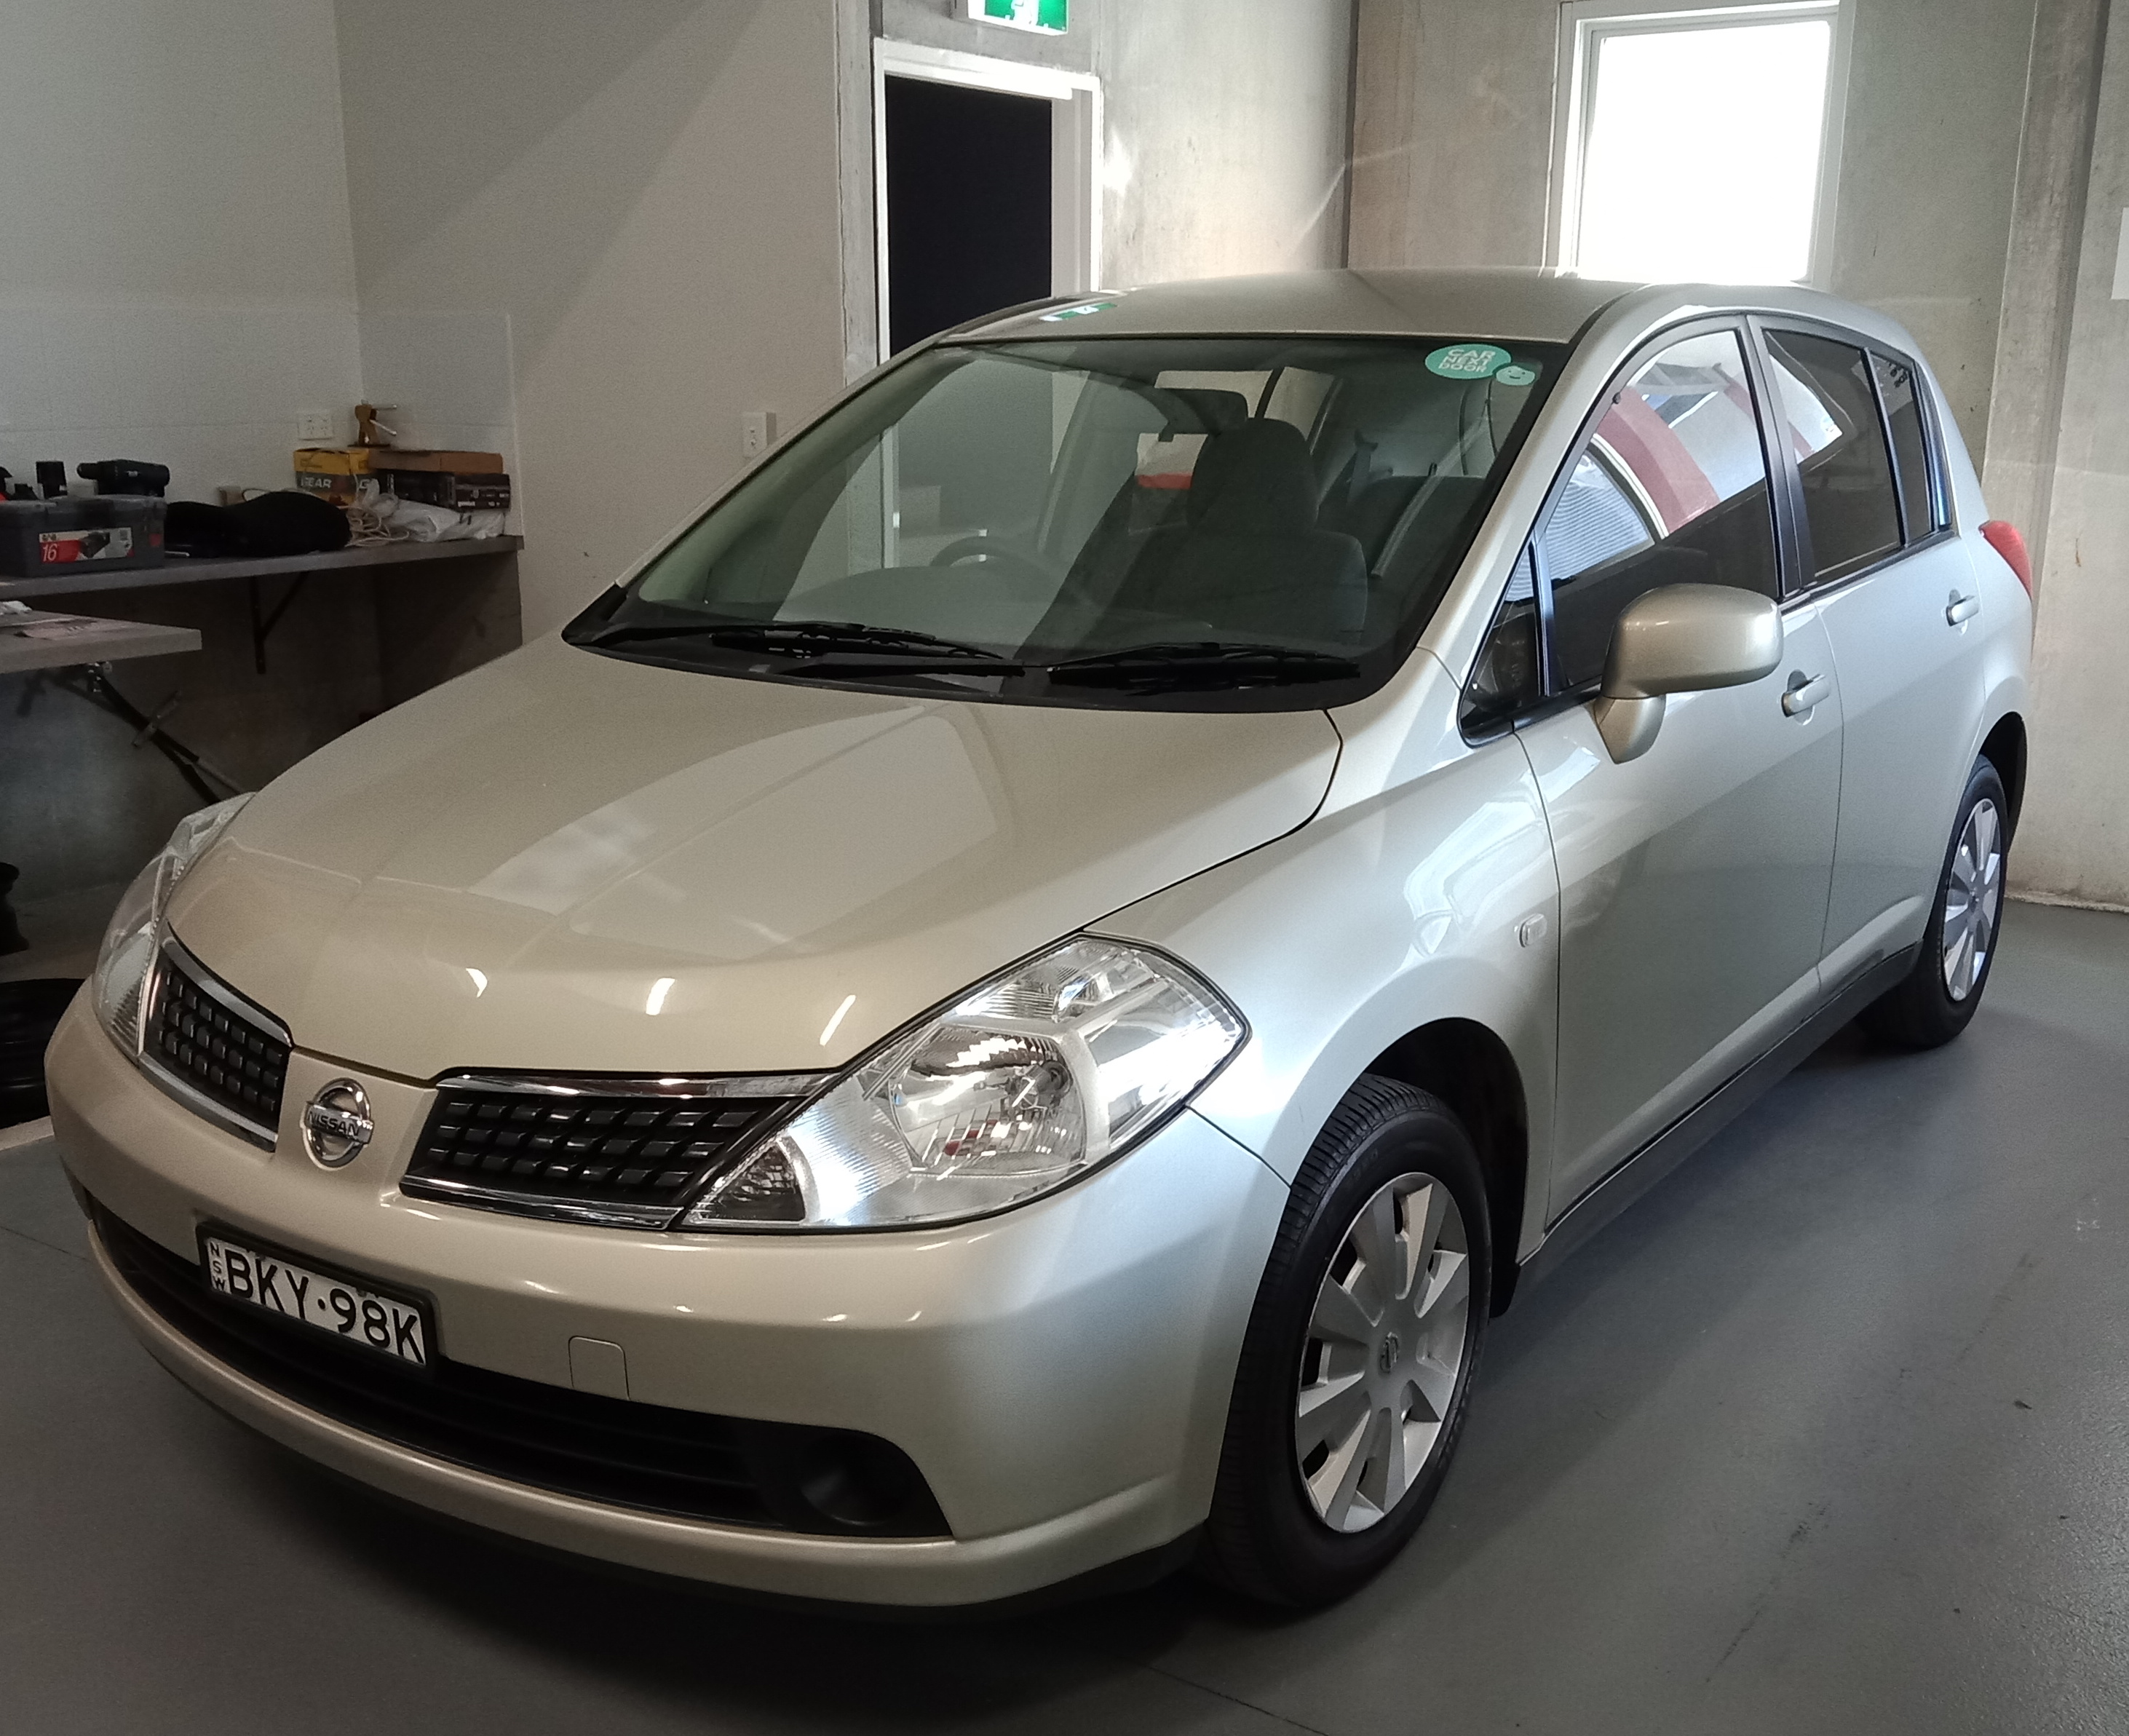 Picture of Peter's 2009 Nissan Tiida